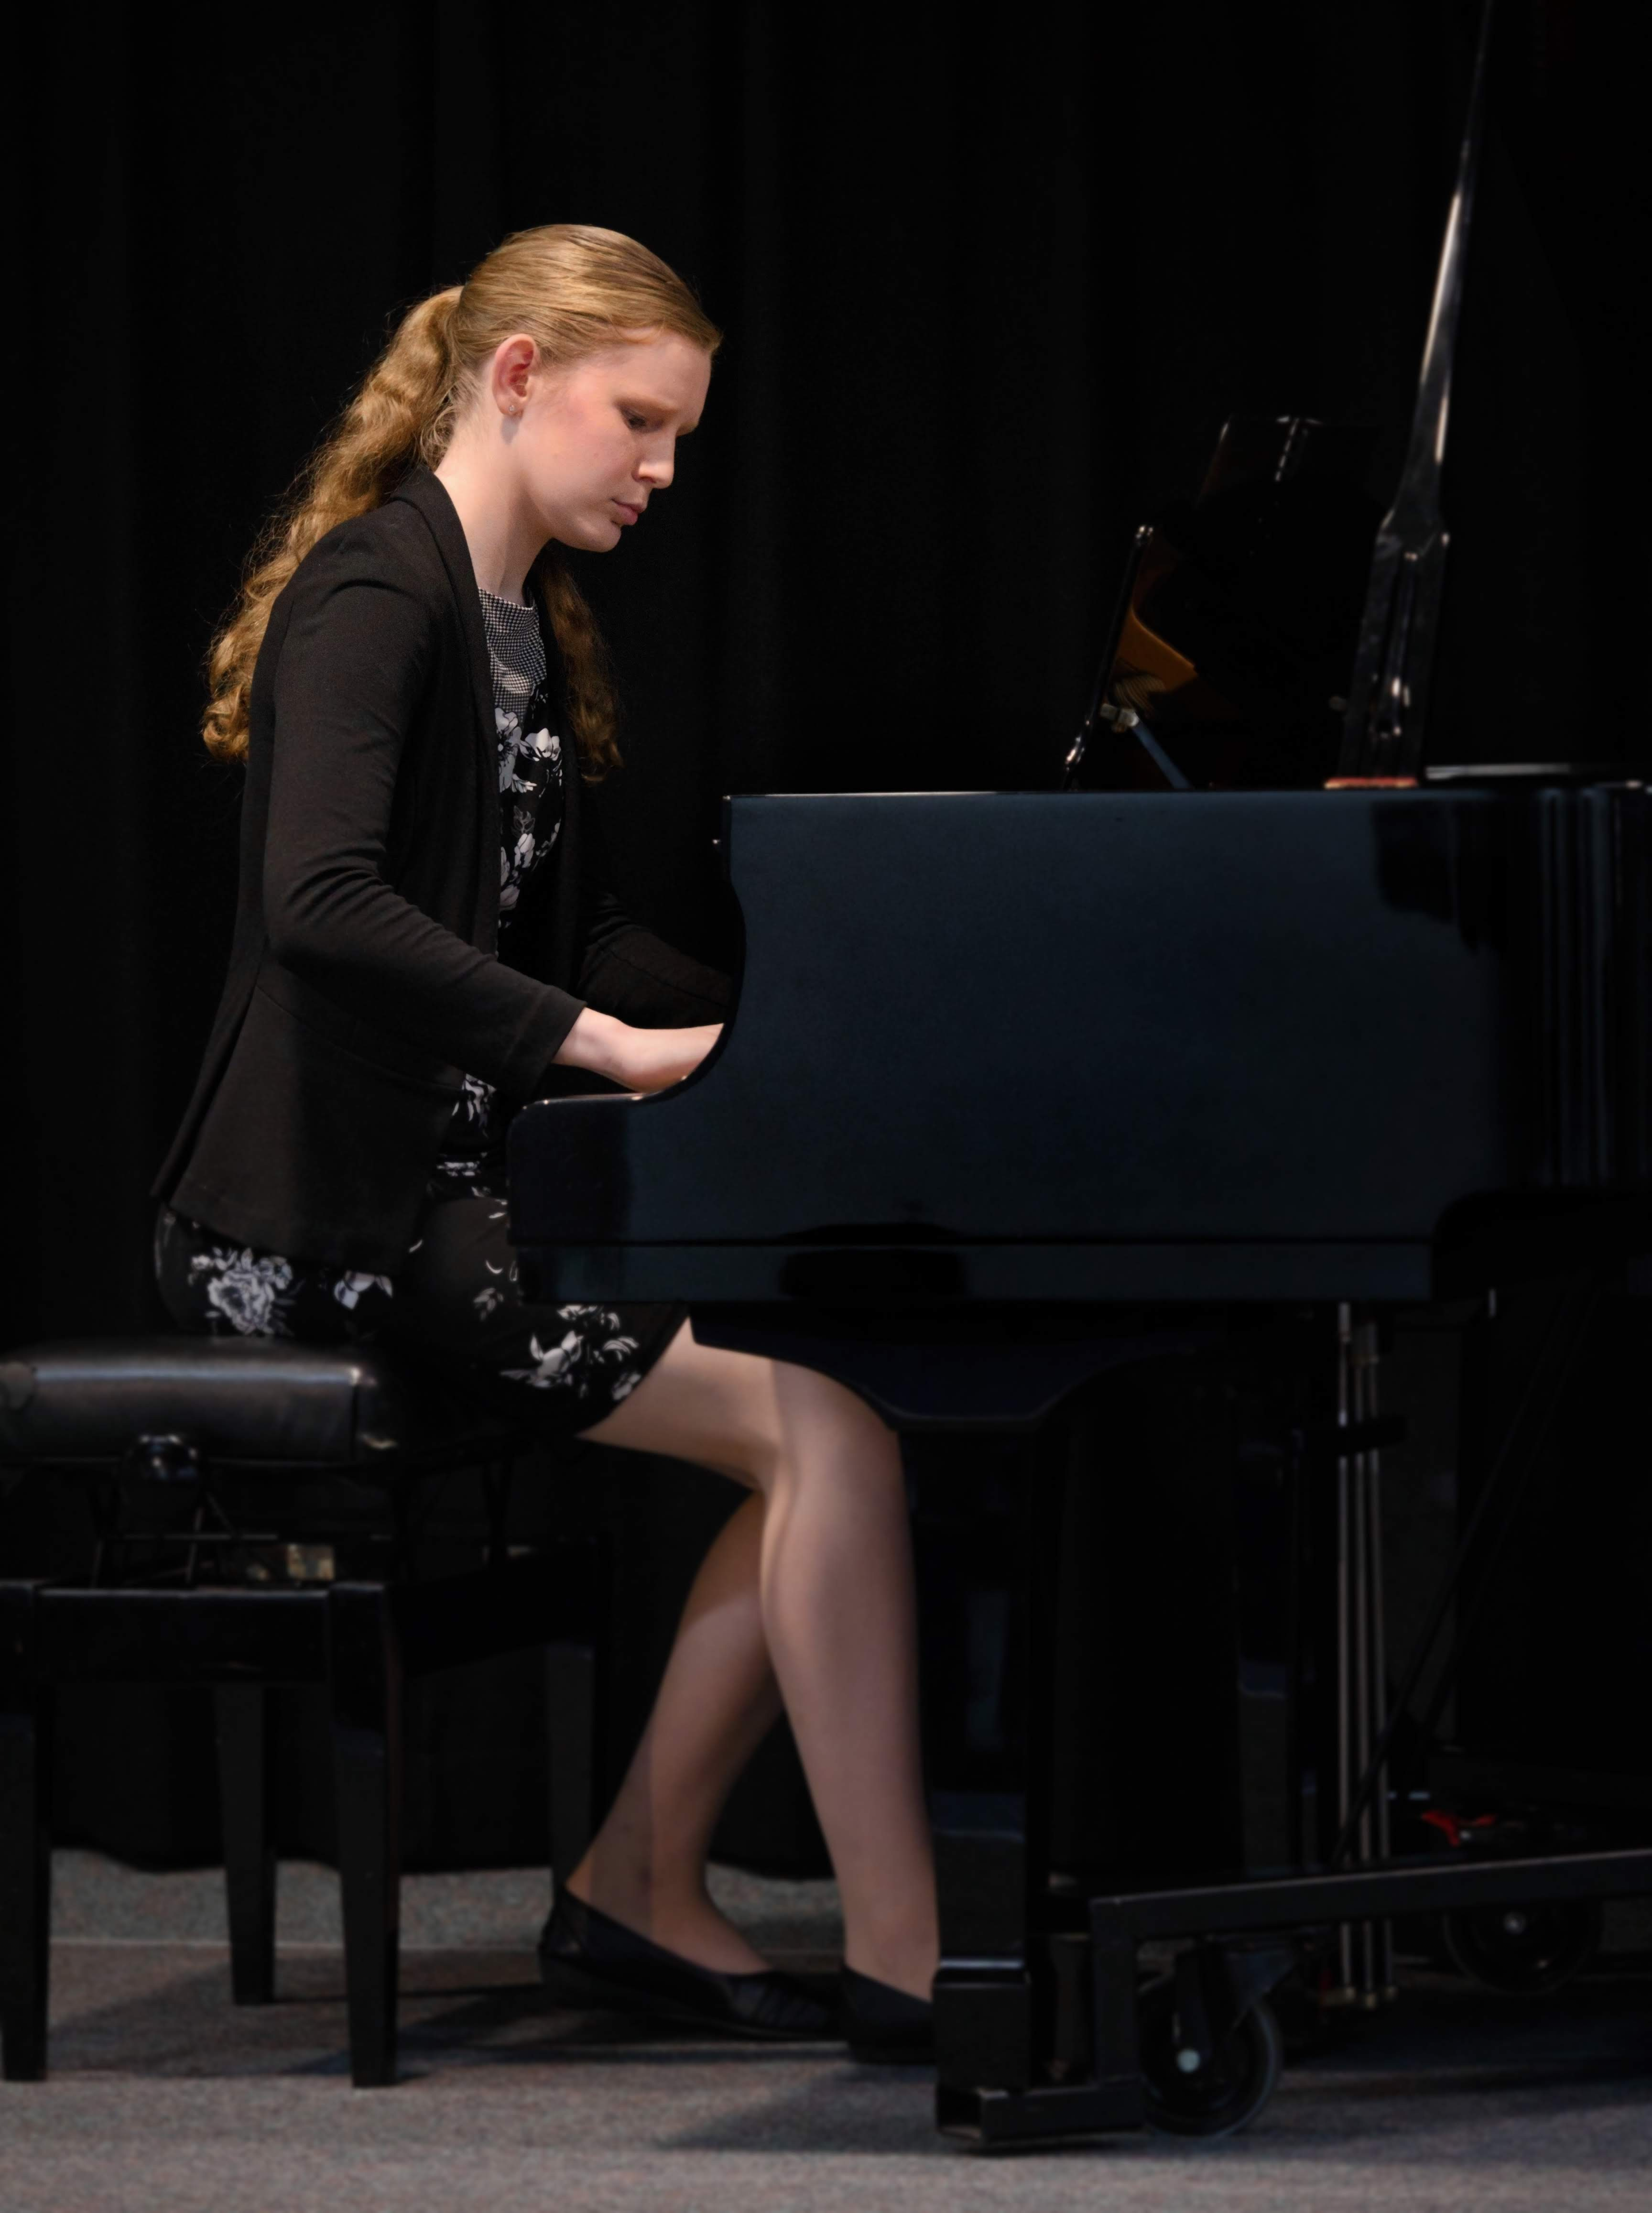 WGE Pianoforte Day 4 Claire Handasyde Displays Her Skills on the Piano